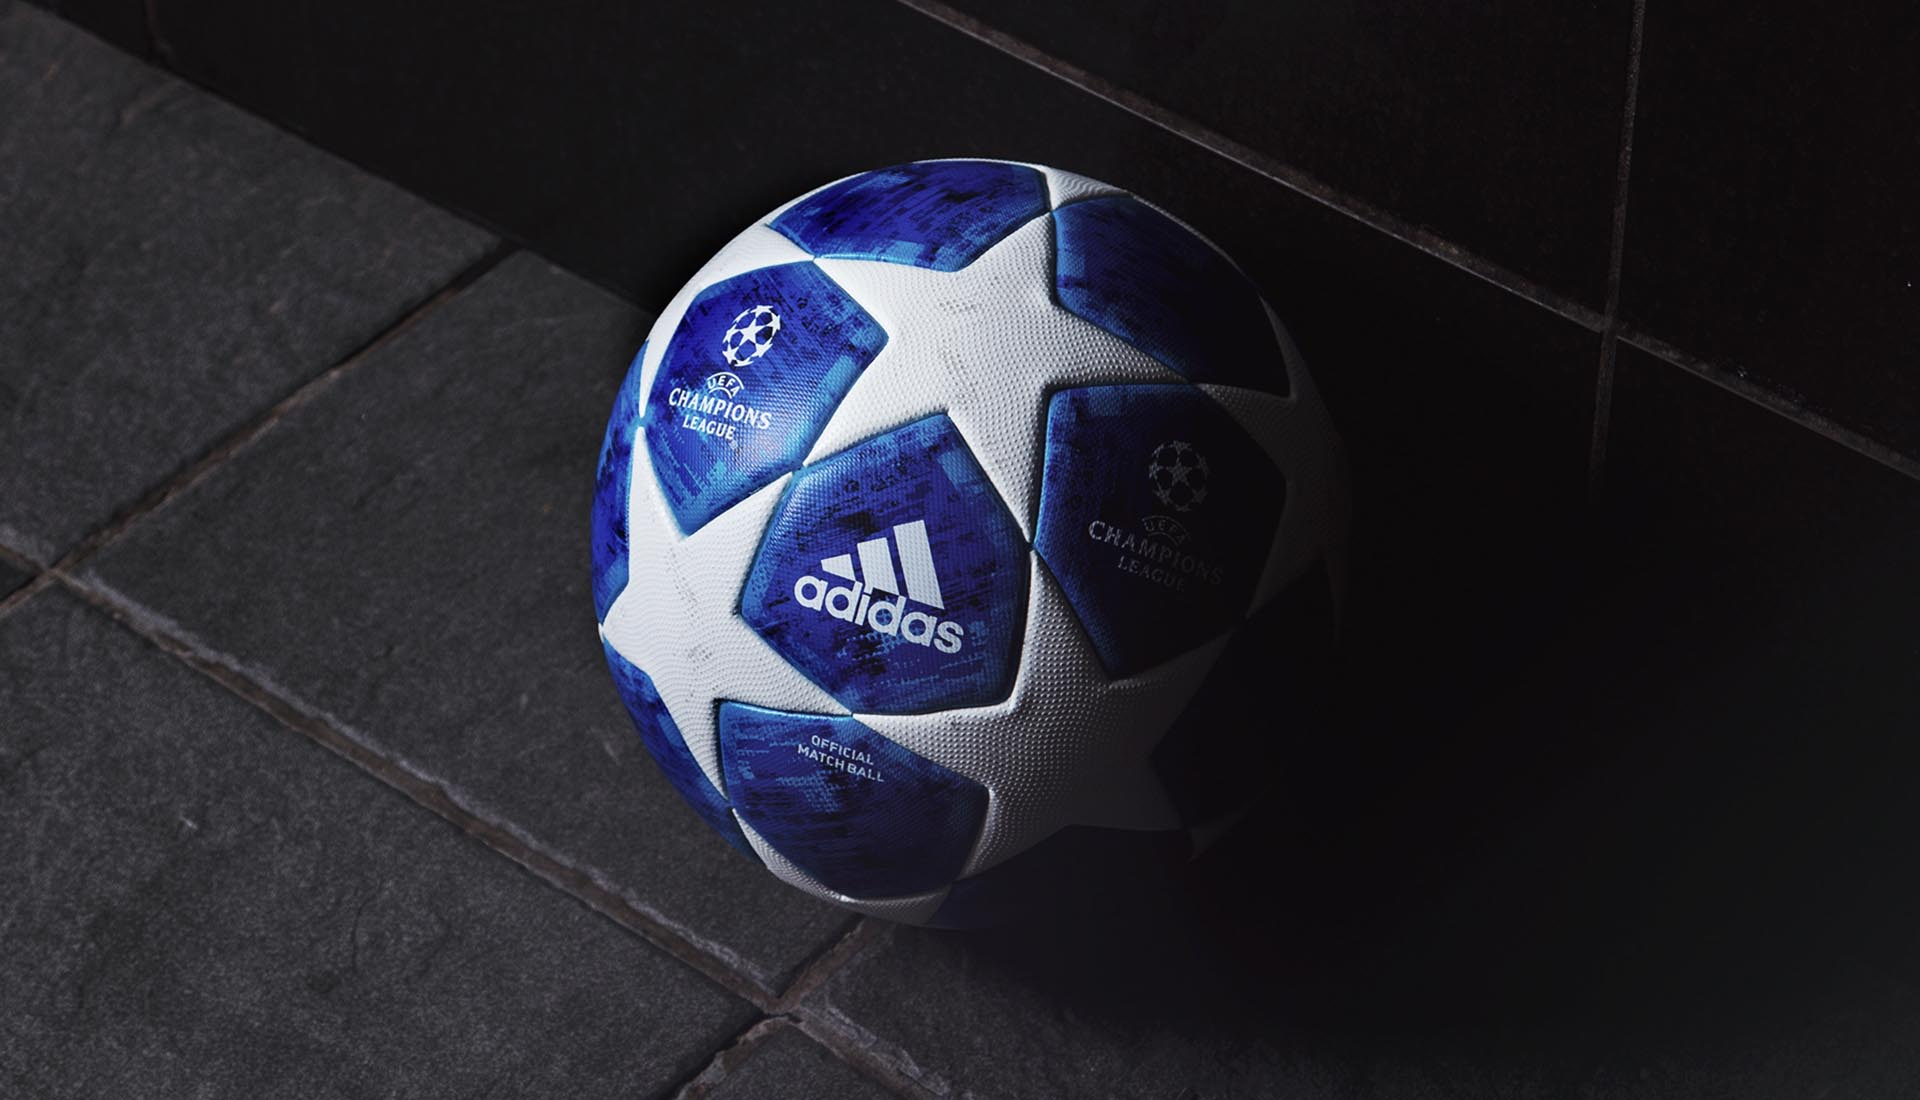 18-19-champs-league-ball-adidas_0004_ucl_omb_16x9_04